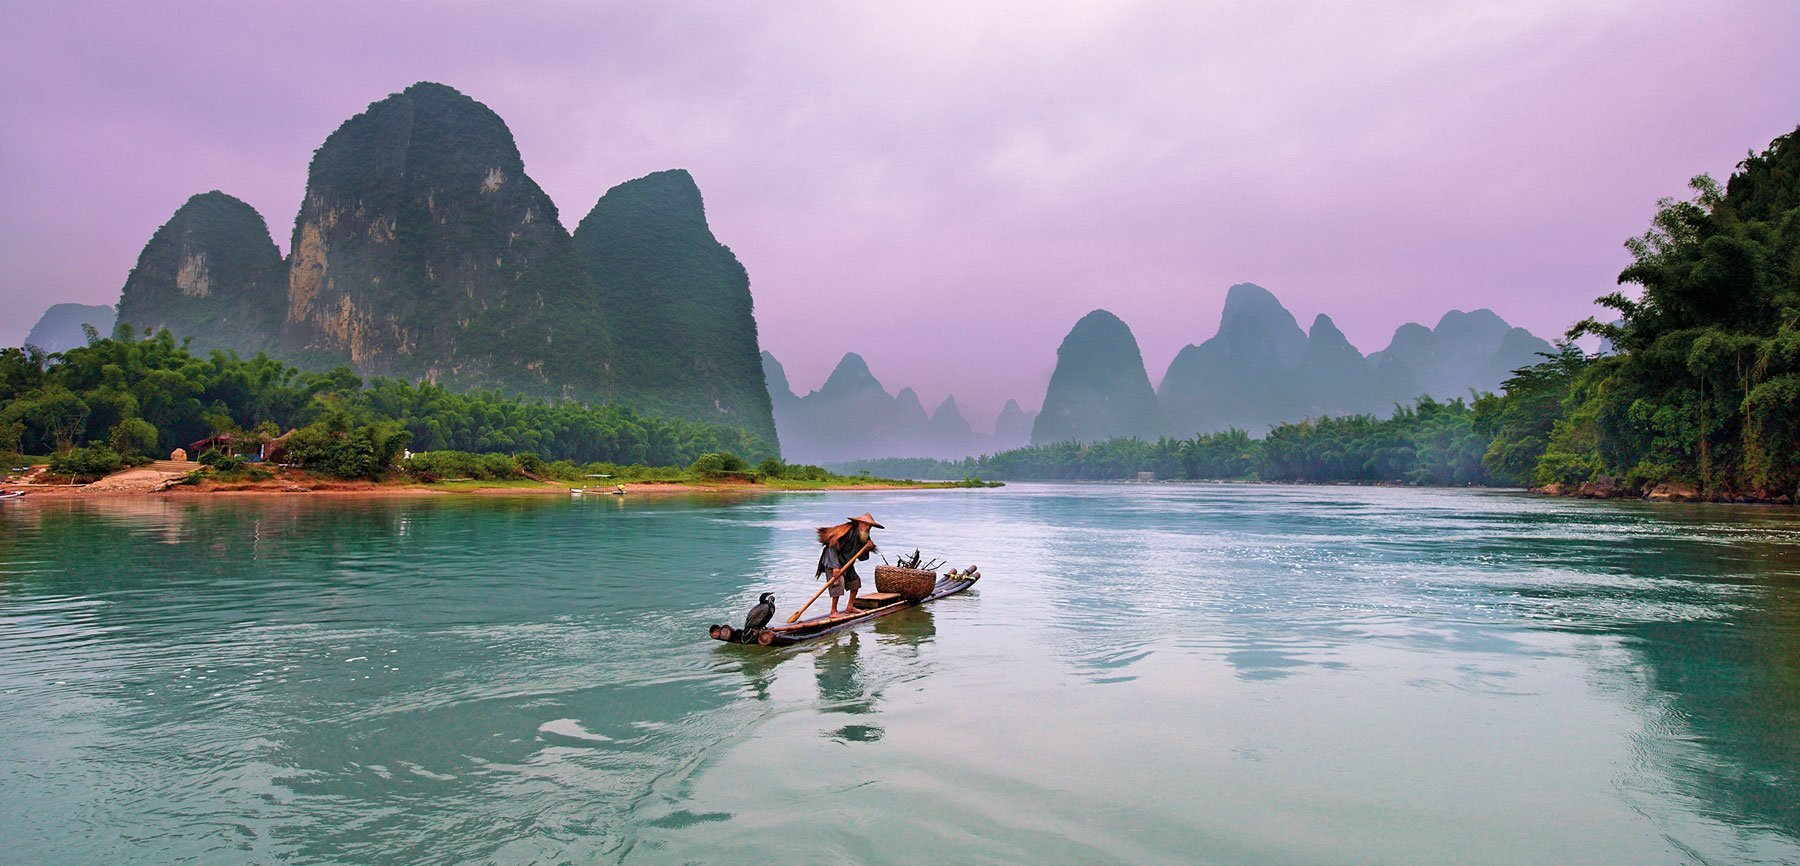 An old cormorant fisherman poling down the river on his raft, Guilin, China.